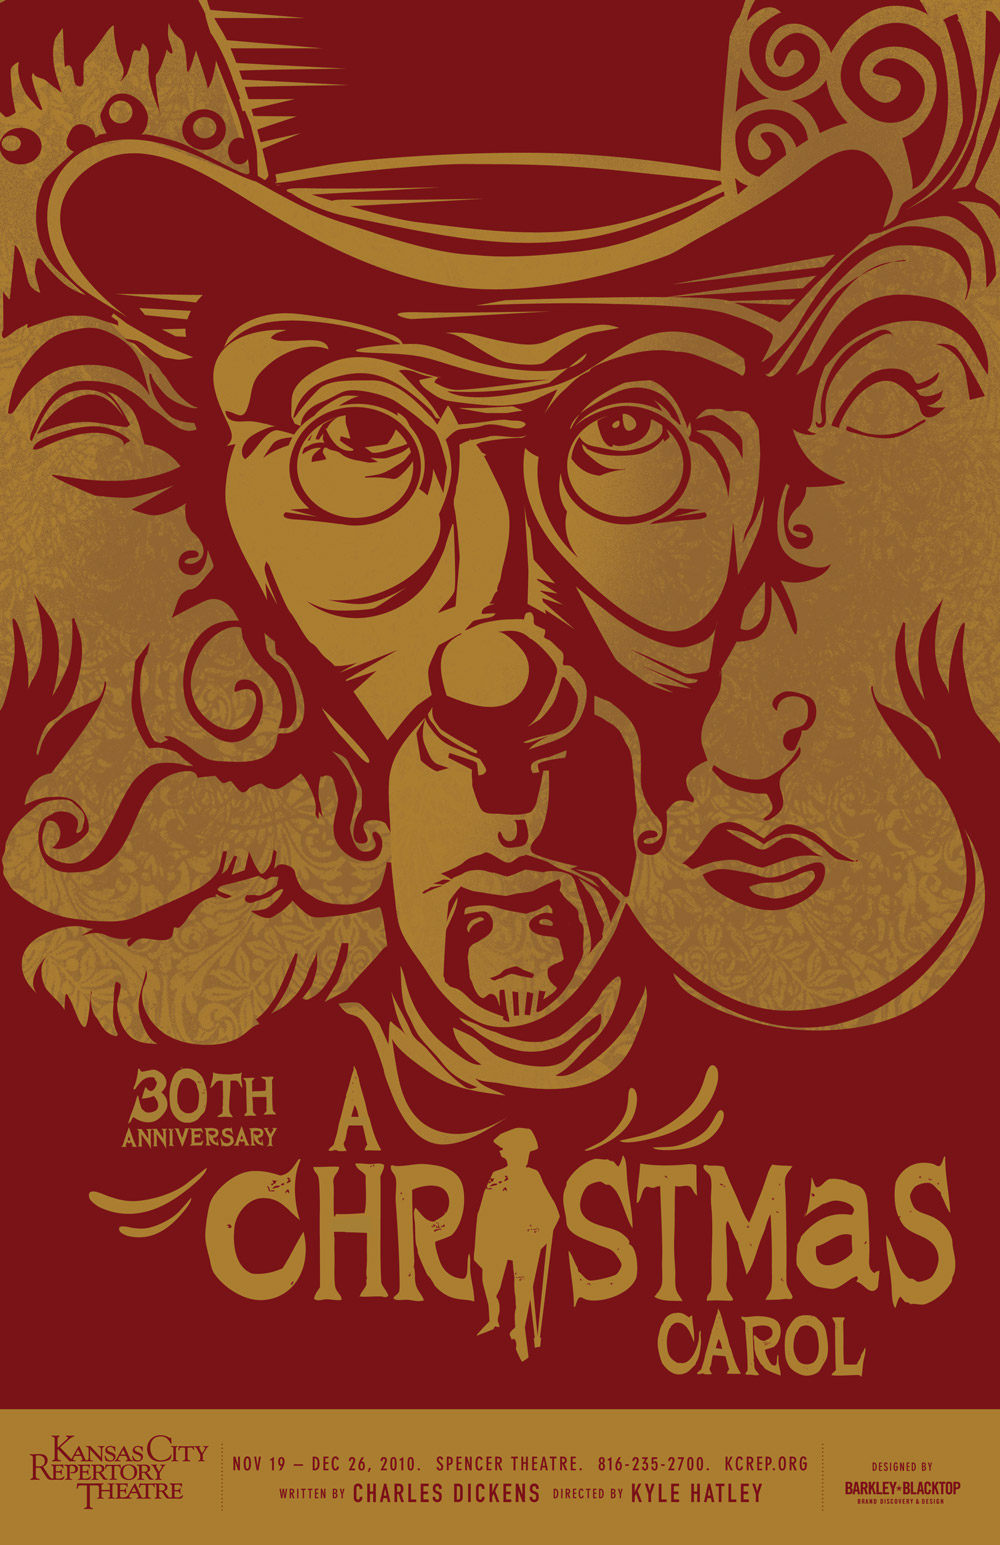 I Draw All Day: A Christmas Carol Poster